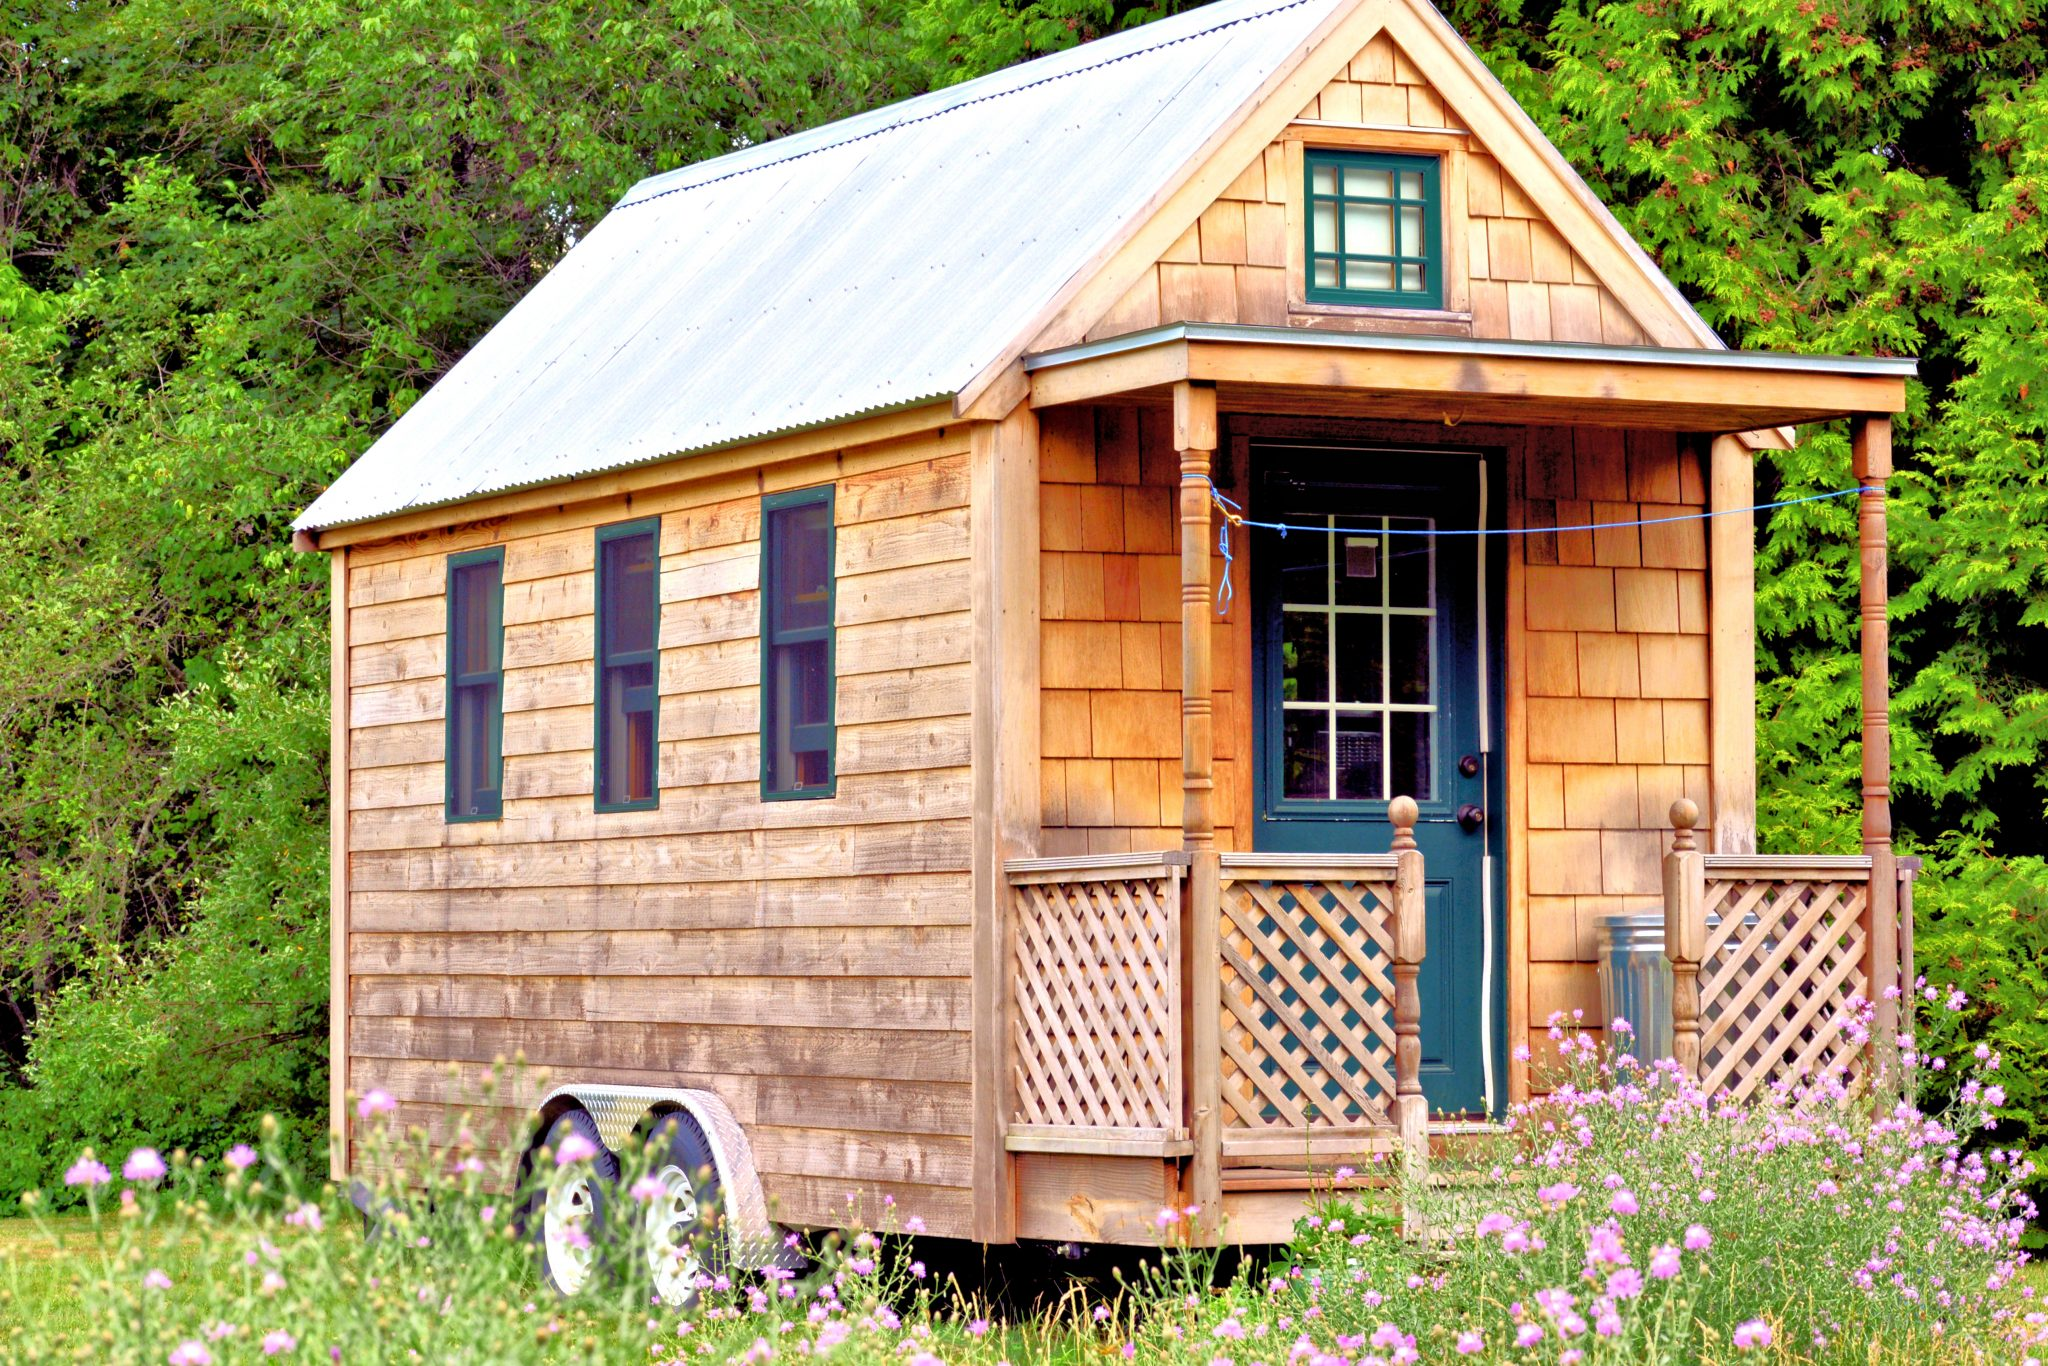 Financing Tiny Homes and Getting Non-Medical Assistance for Your Loved Ones